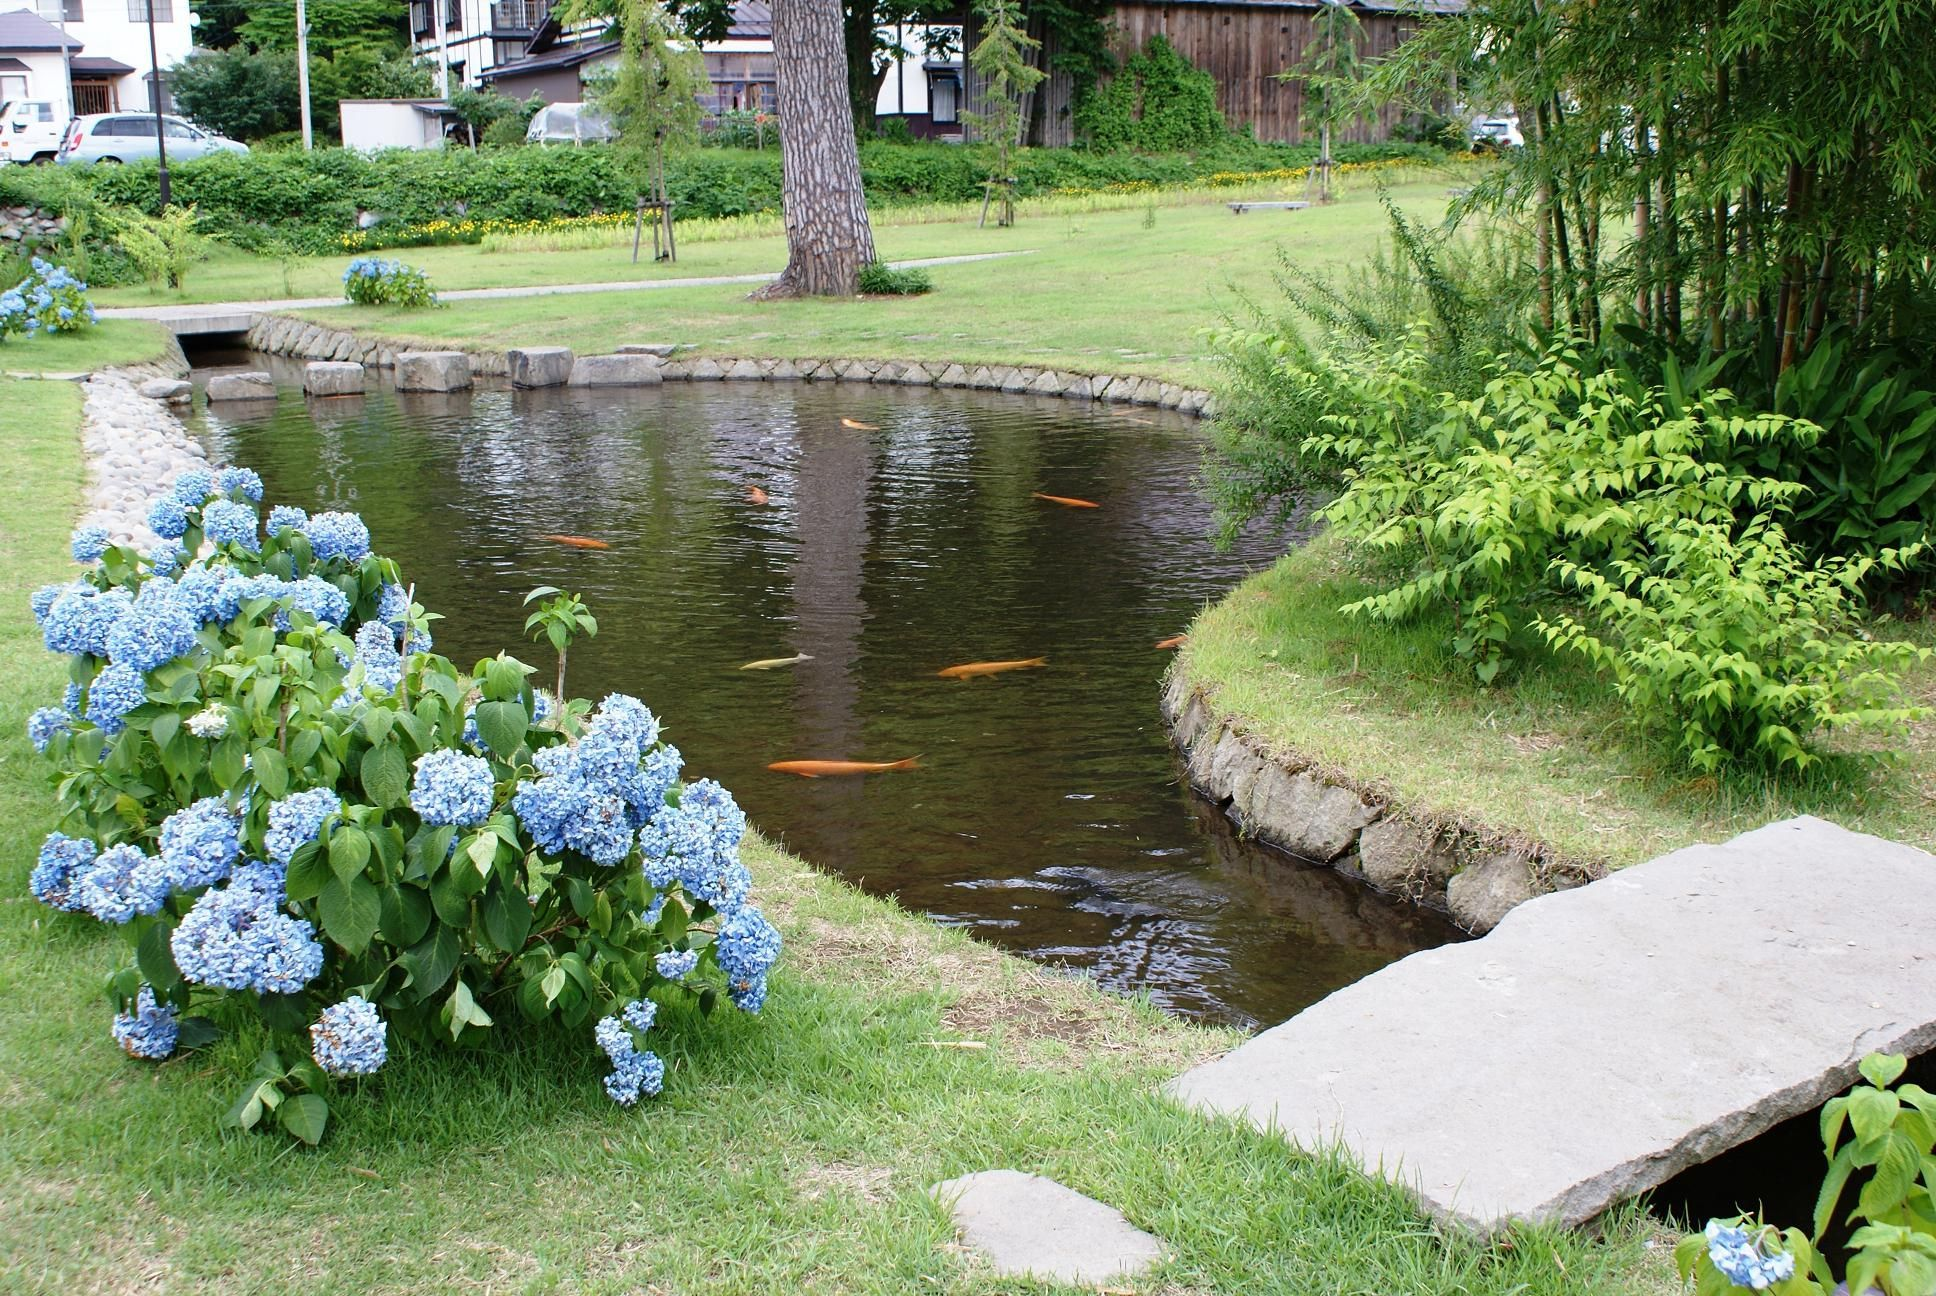 Stunning 32 Small Fish Pond Designs Look Perfect For Improving Tiny Garden Landscape Inspiring Sma Ponds Backyard Fish Pond Gardens Landscaping Water Feature